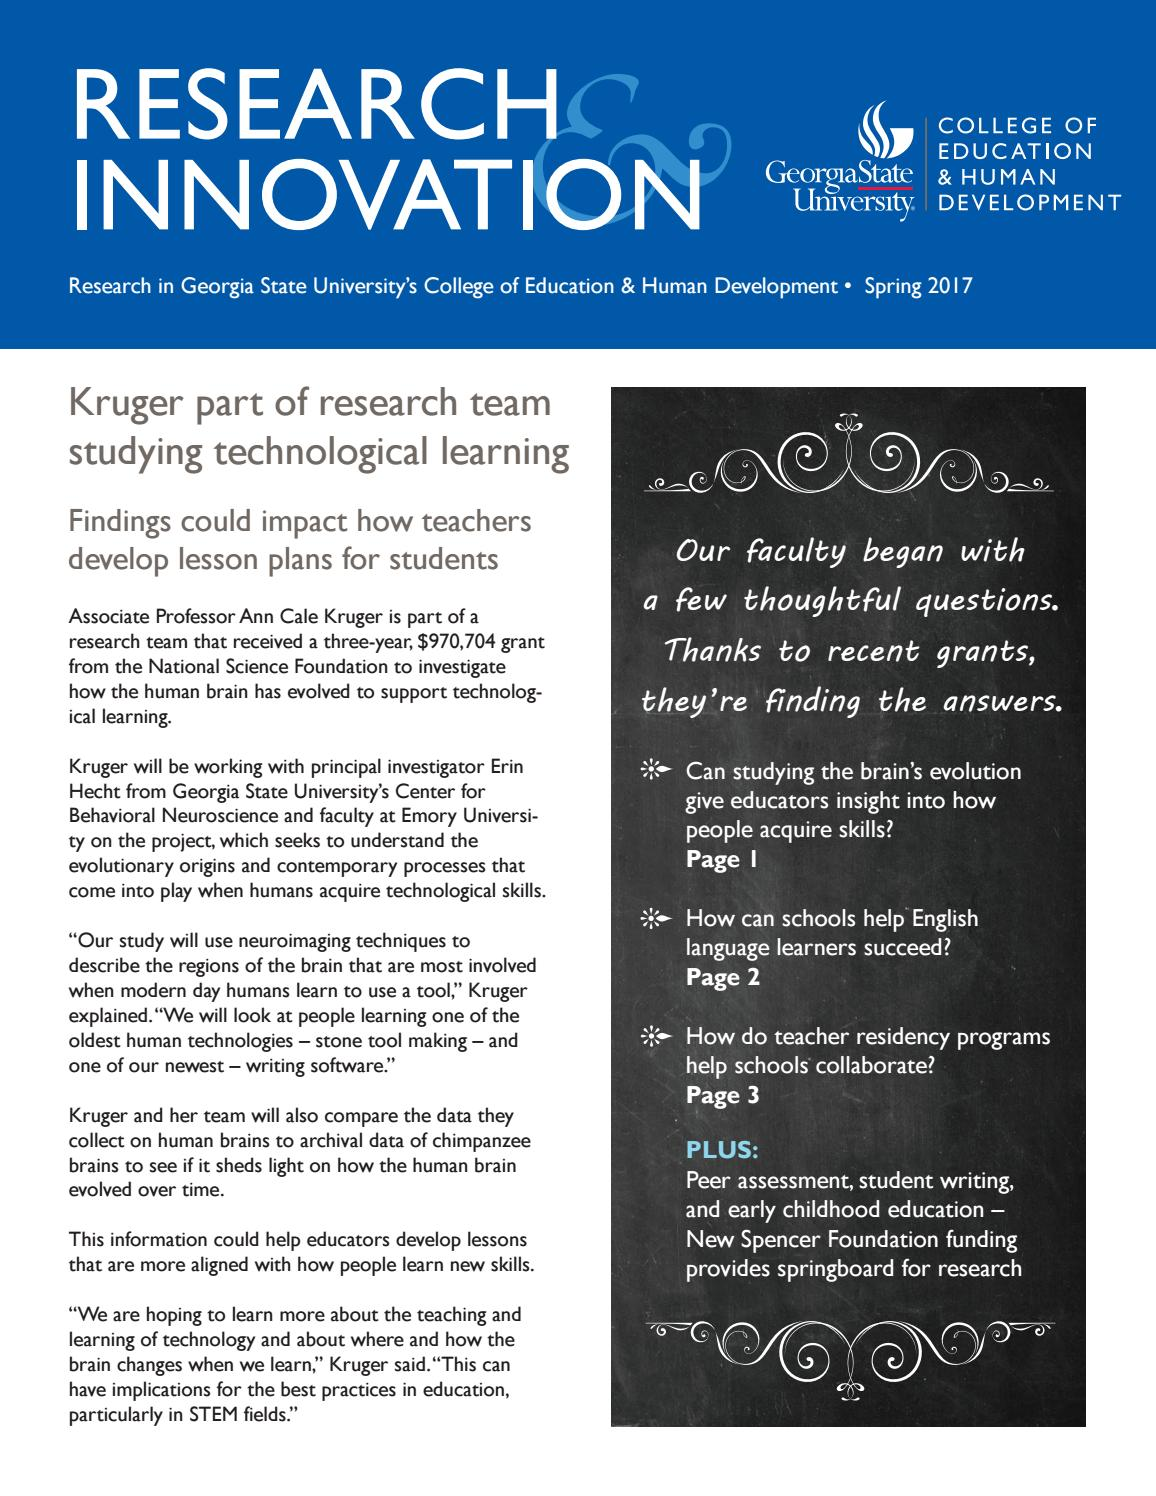 Research & Innovation - Spring 2017 by Georgia State